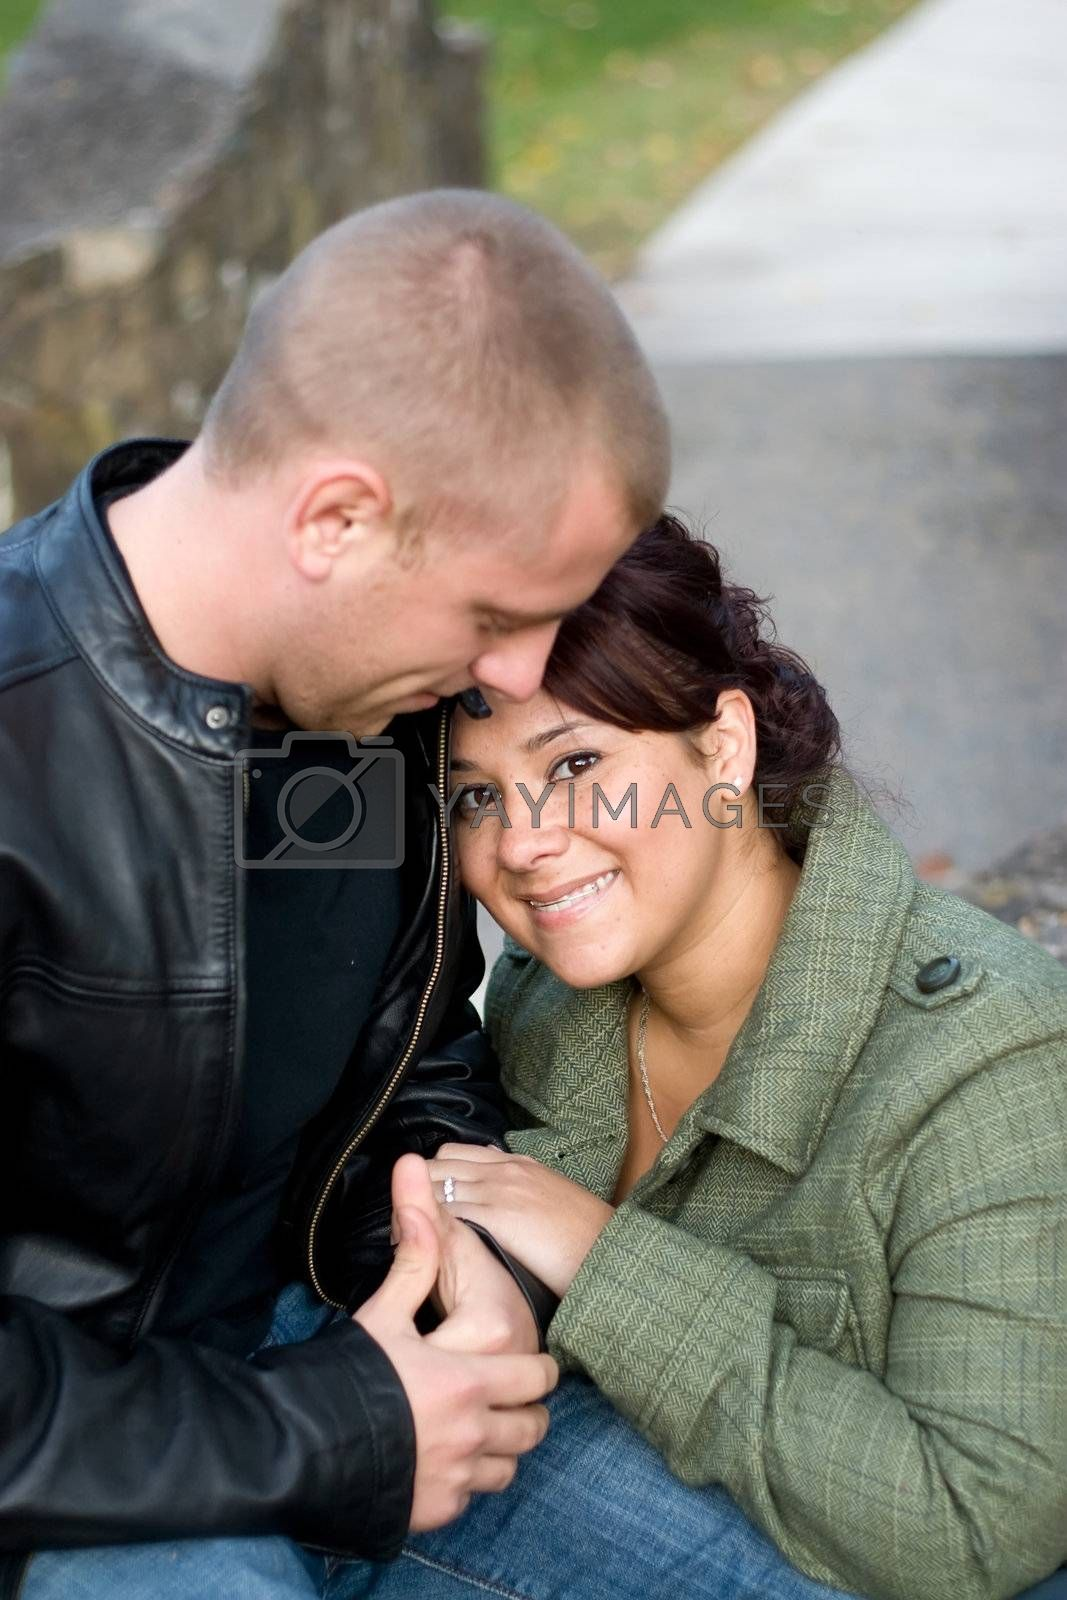 A happy interracial couple cuddling together outdoors. Shallow depth of field.